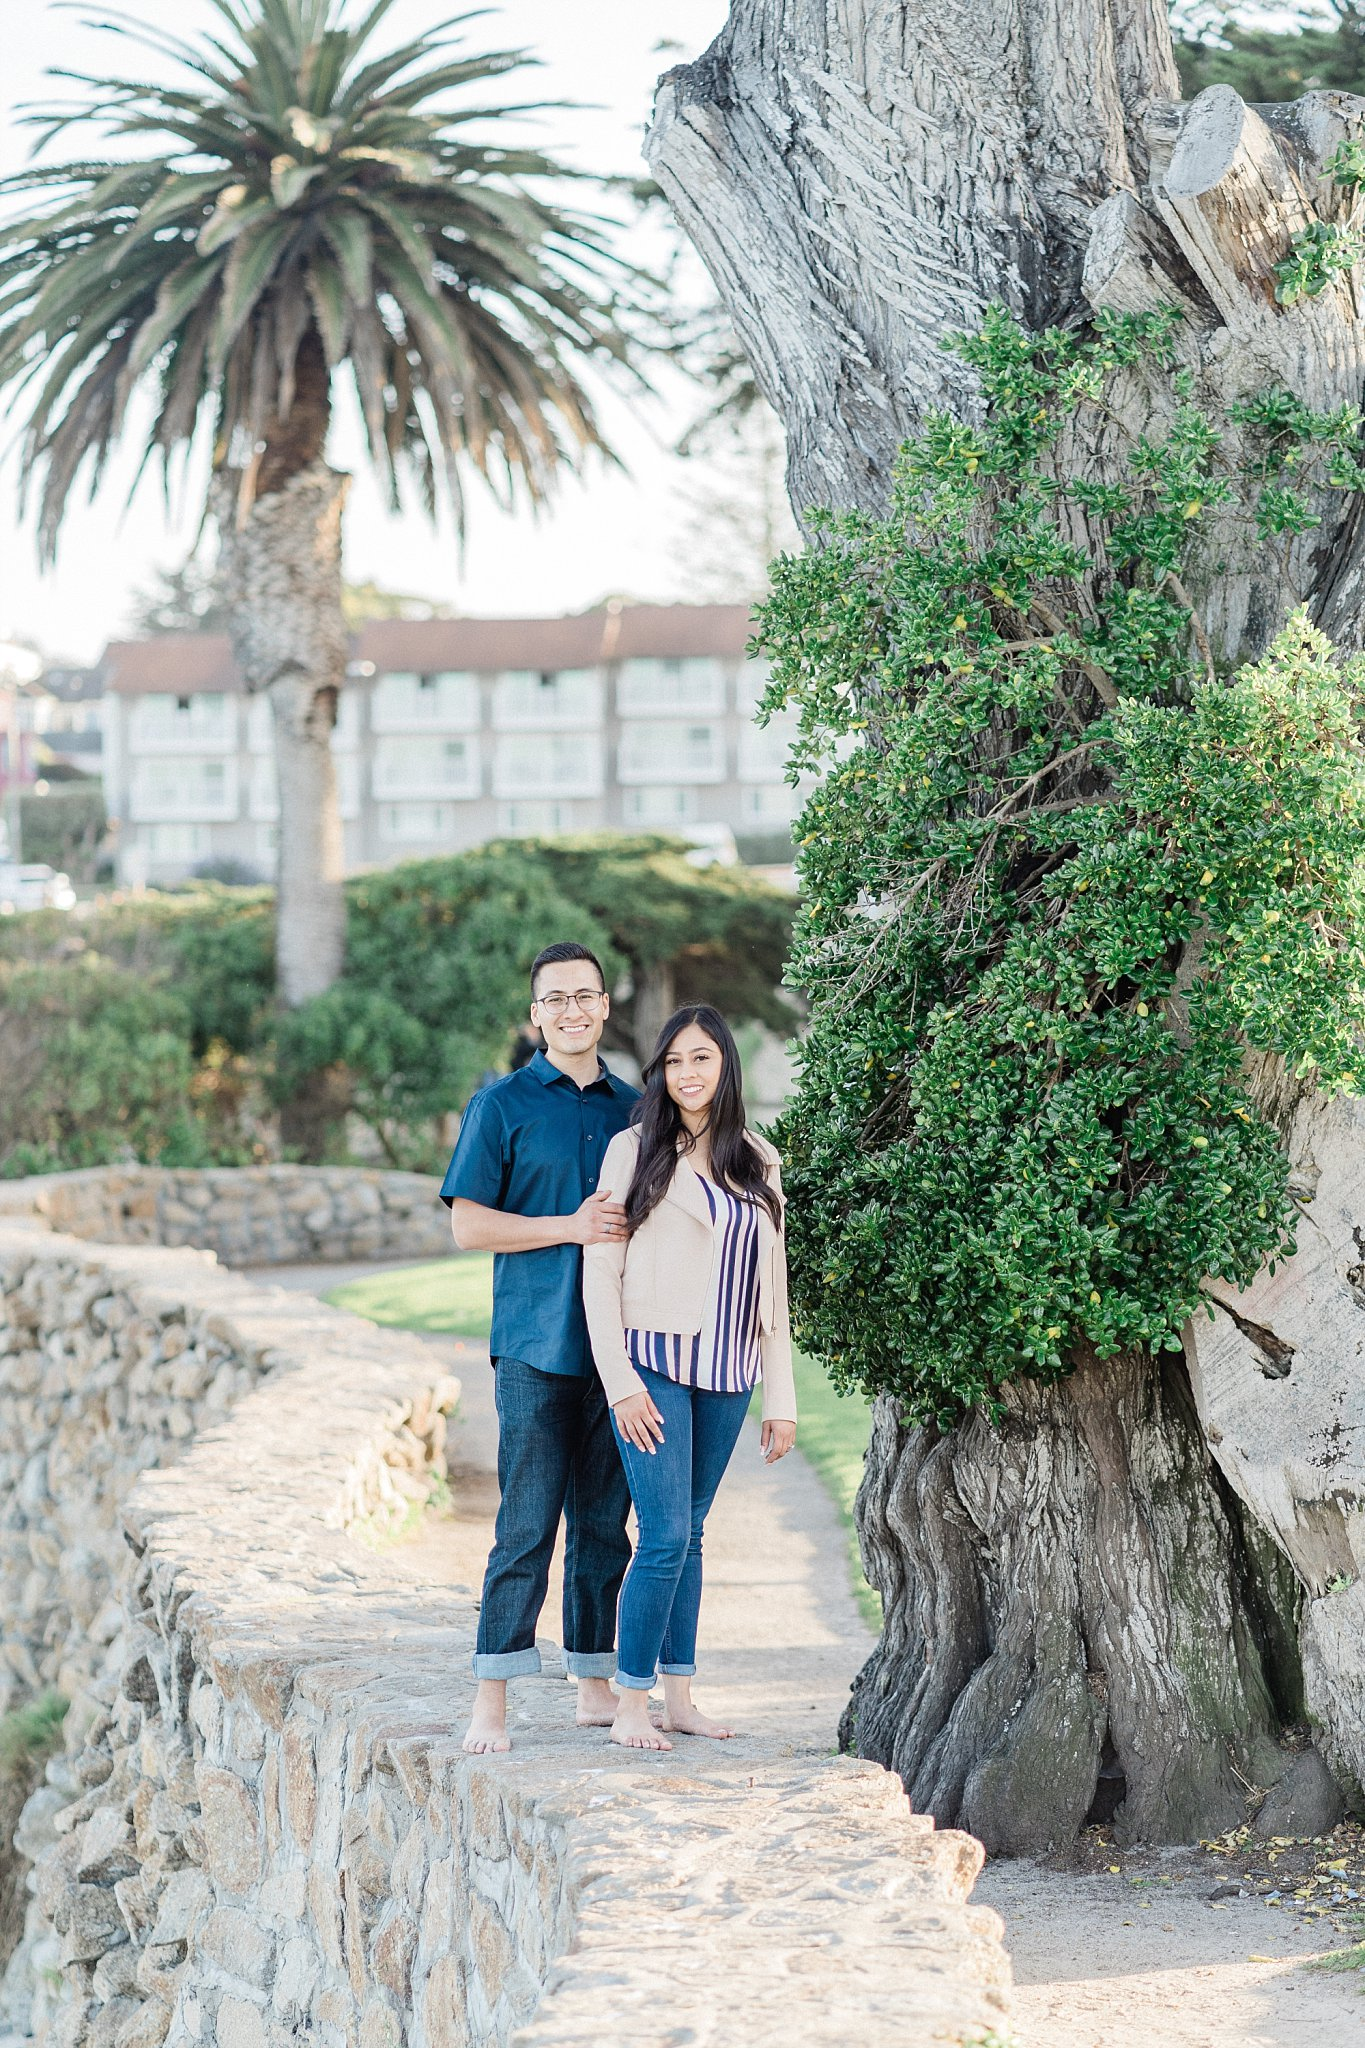 monterey-engagement-photographer-city-hall-drew-zavala-khrystal-chris_0067.jpg